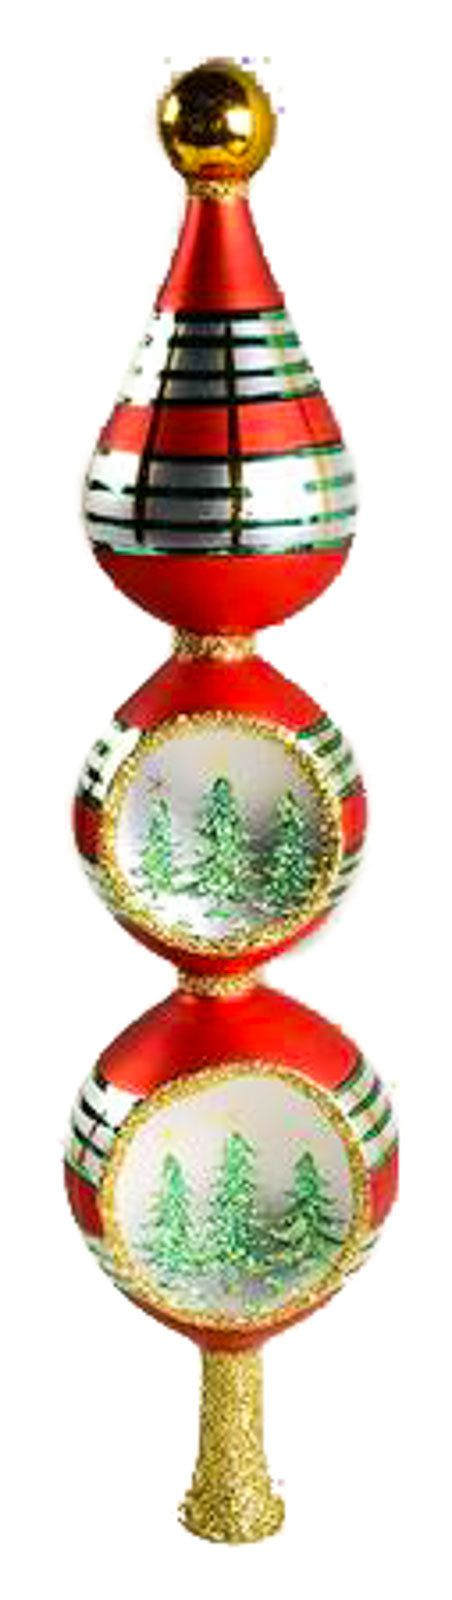 232 best Christmas Tree Toppers & Holders images on ...